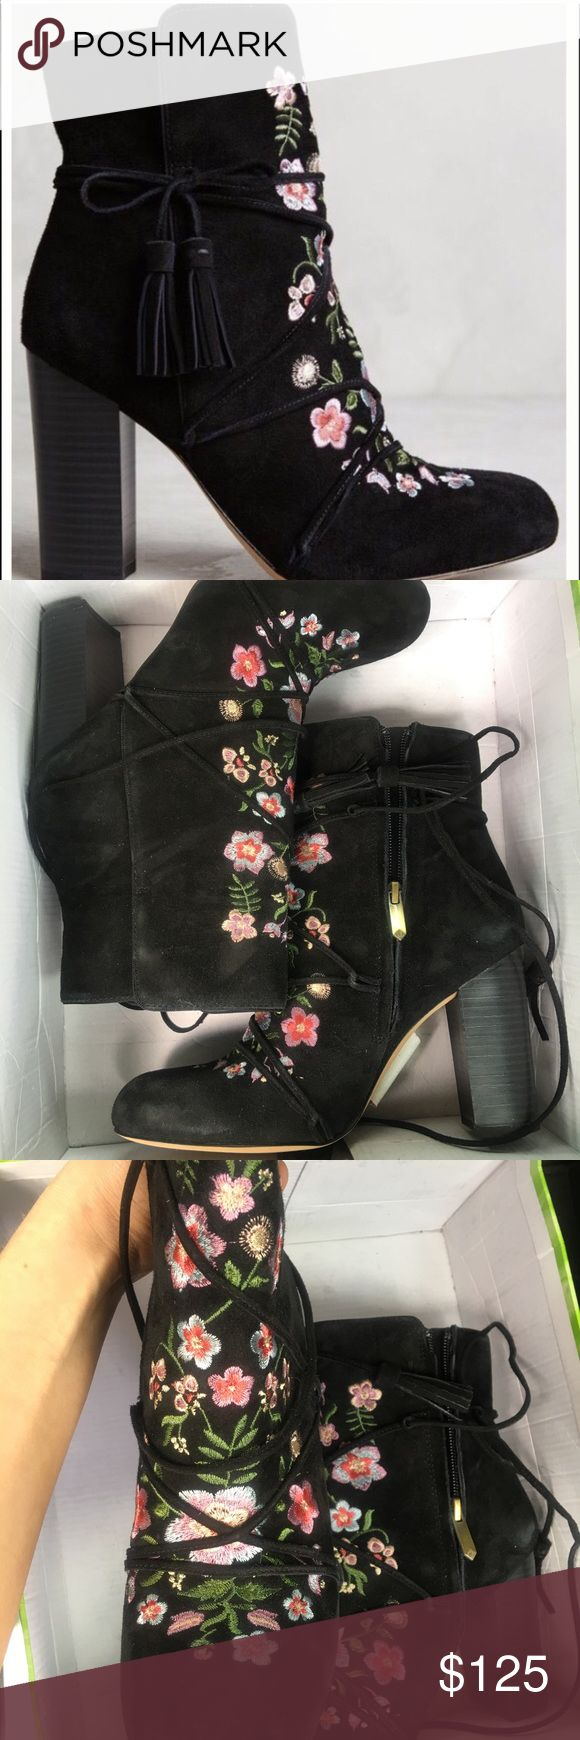 Winnie Boot by Sam Edelman NEW in Box! SALE✨✨✨ Winnie Boot by Sam Edelman, new in box. Sold at Anthropologie and seen in many SS17 blogs, very Valentino / McQueen -esque. Floral Embroidered Black Bootie Anthropologie Shoes Ankle Boots & Booties